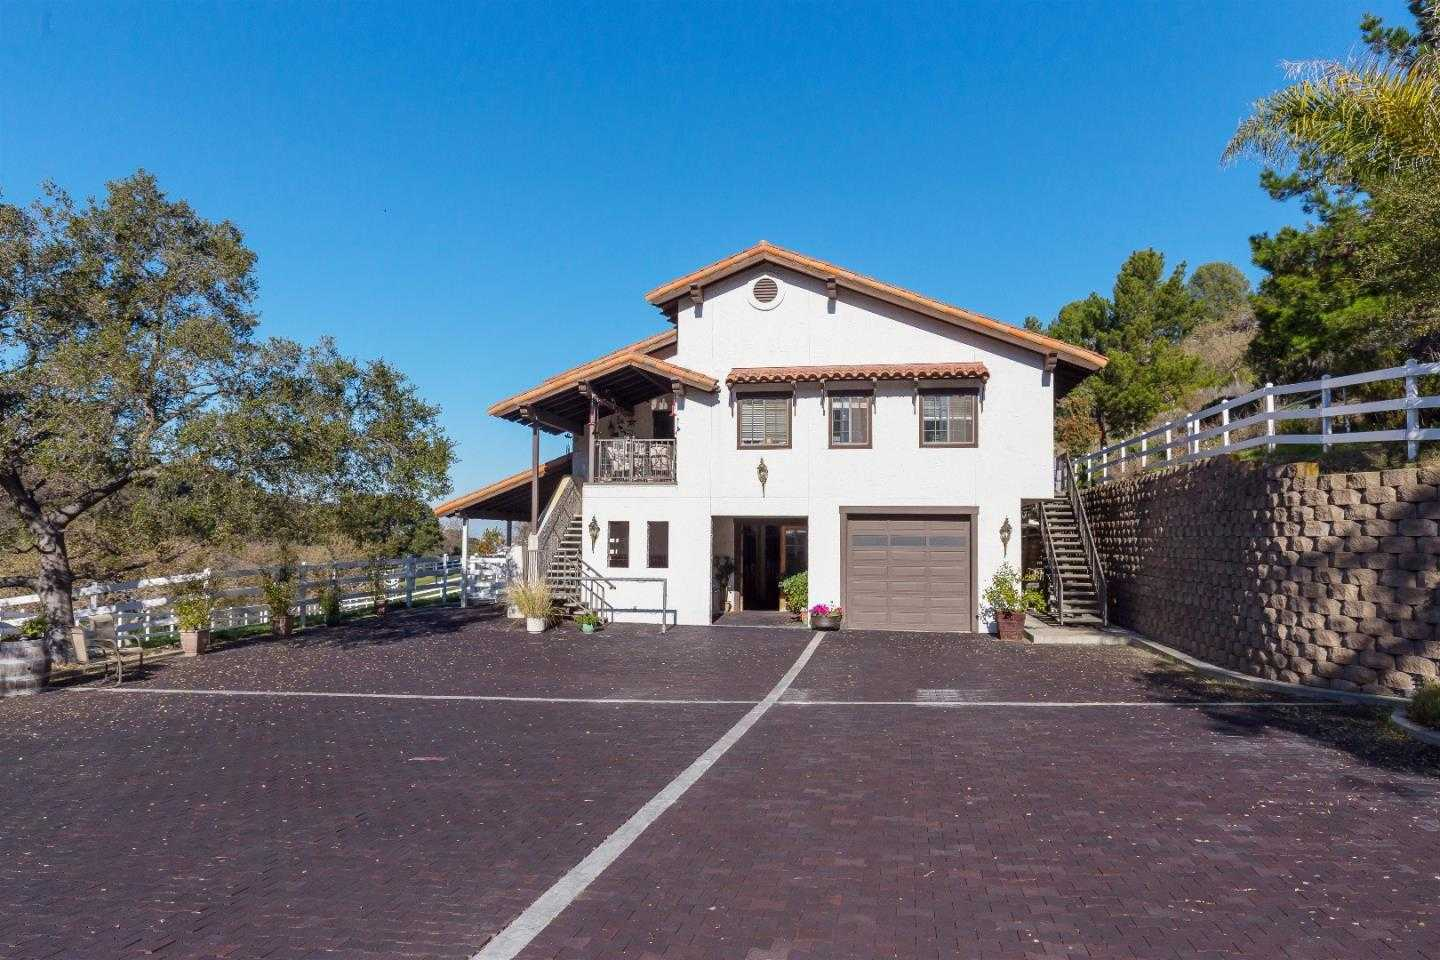 $2,950,000 - 2Br/1Ba -  for Sale in Cupertino